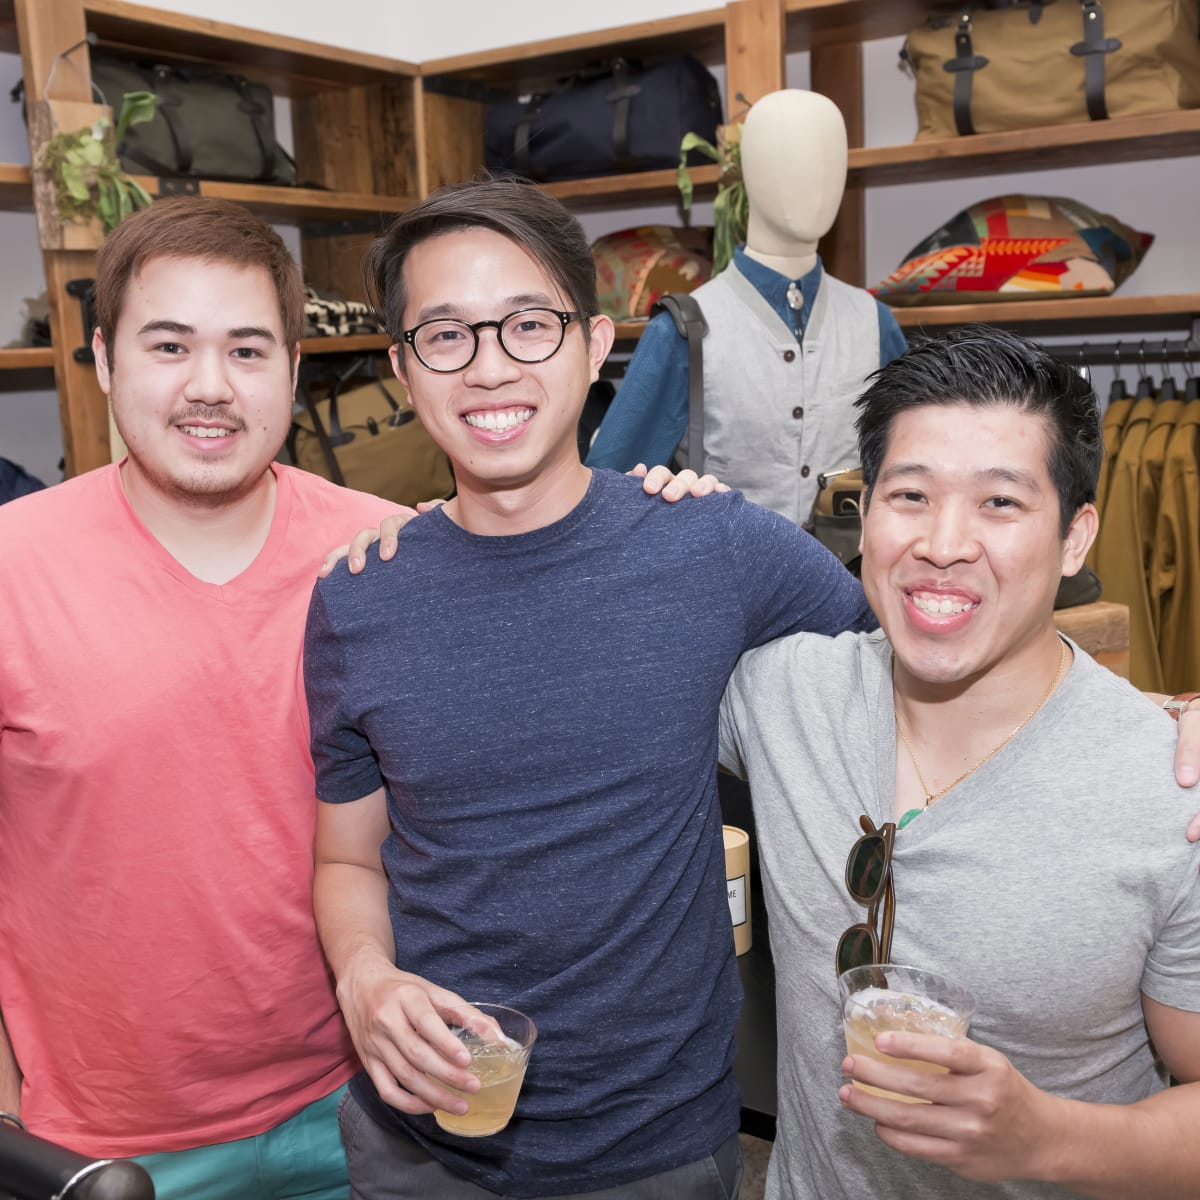 Houston, Stag Provisions opening party, June 2015, Charlie White, Danny Le, Tommy Lo